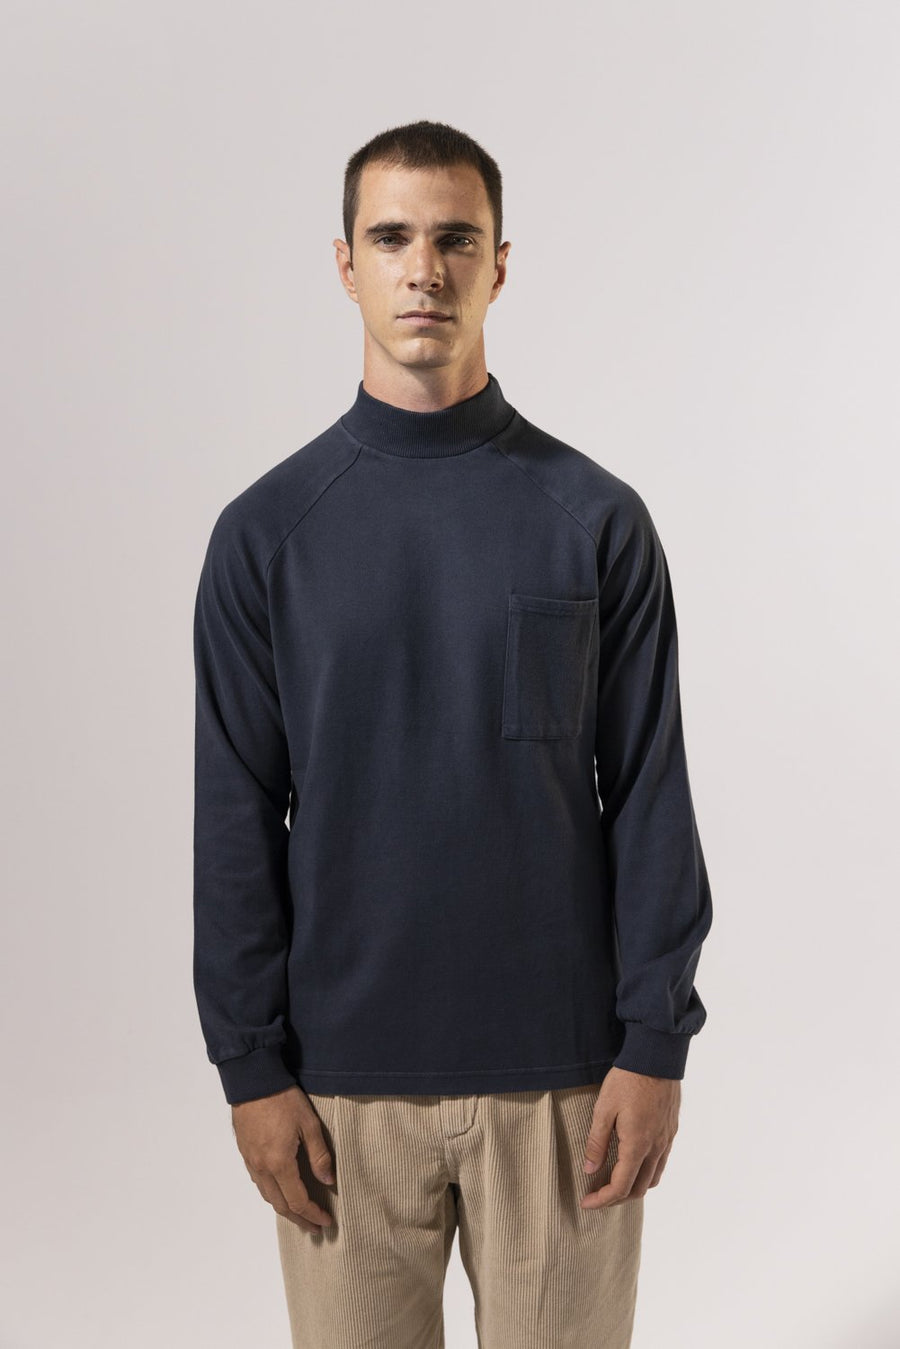 Unfeigned Gear Long Sleeve Smock Neck T-Shirt - Blue Graphite